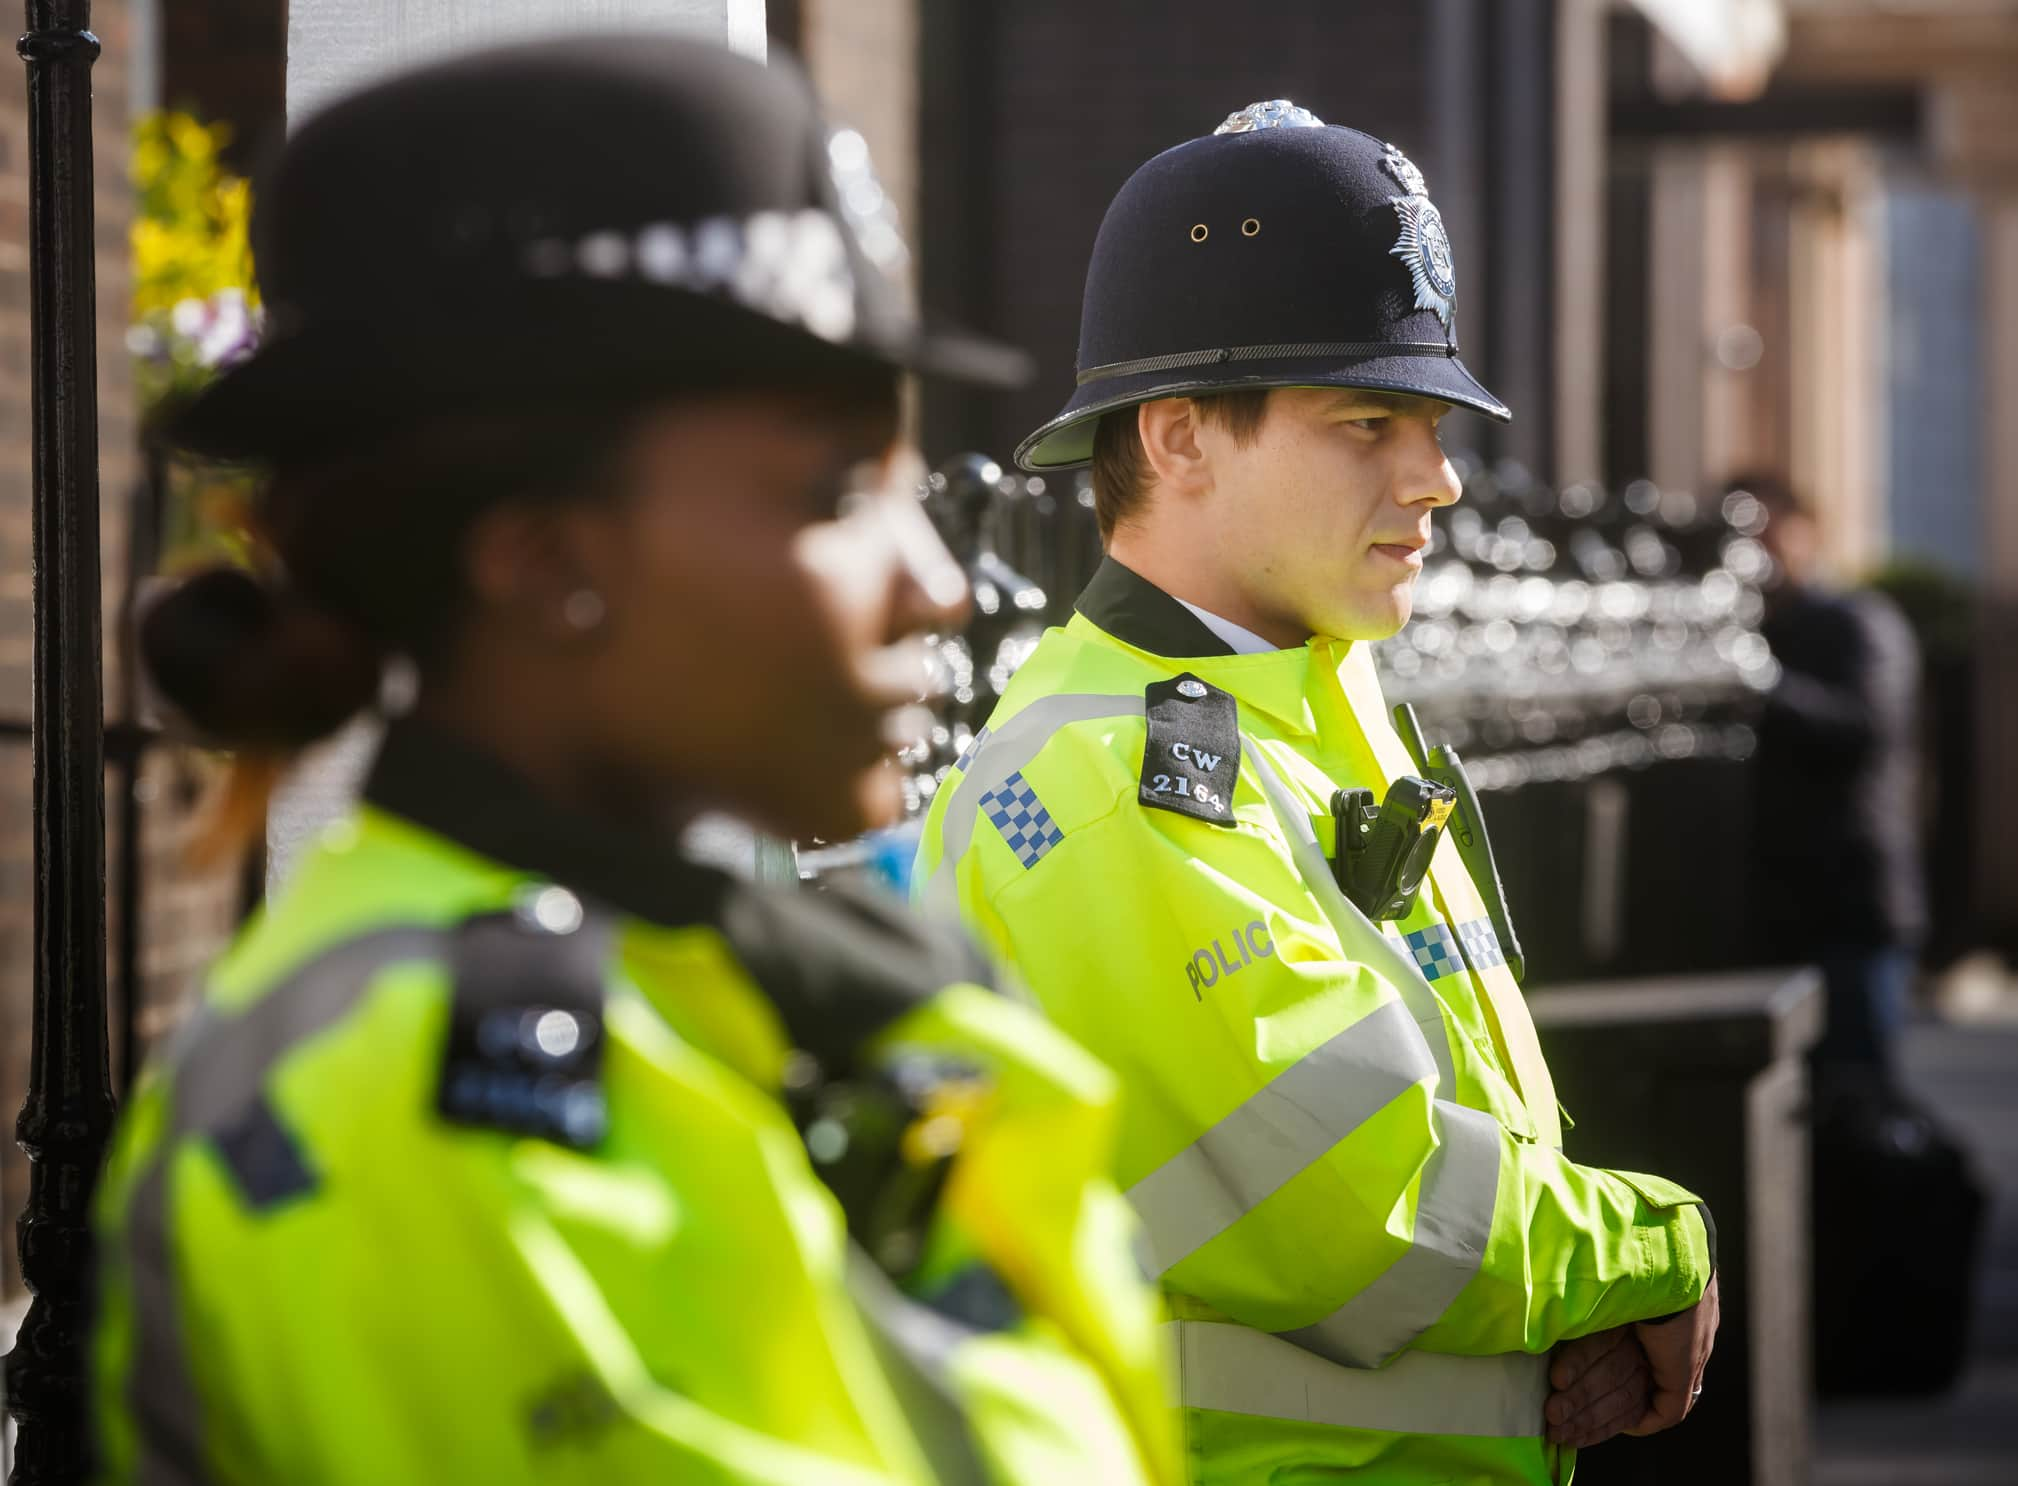 Discounts for British Police staff